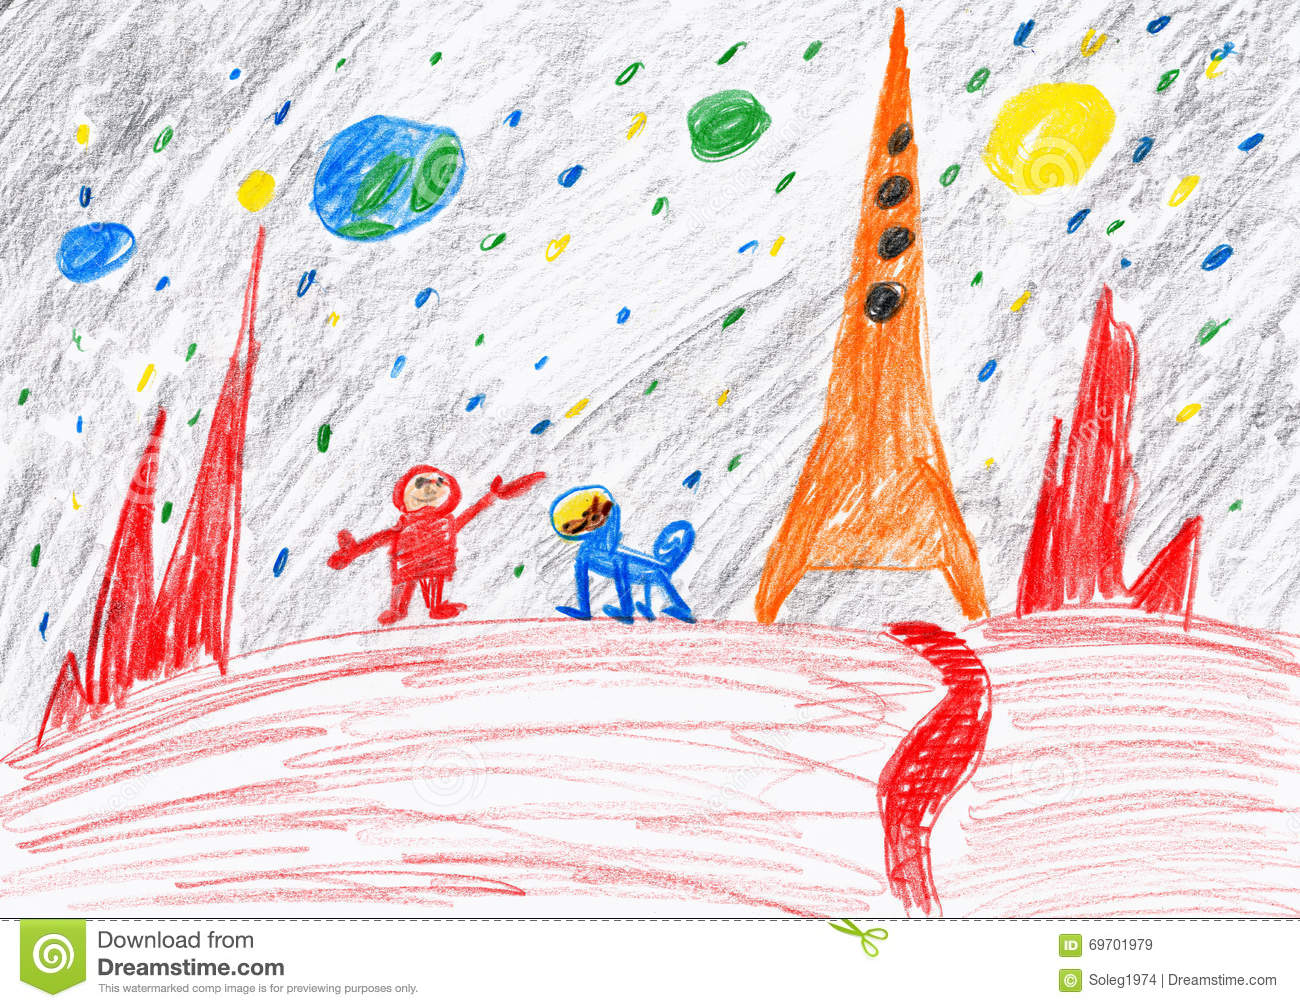 Astronaut and dog exploring the red planet space concept child drawing on paper stock - Dogs for small spaces concept ...